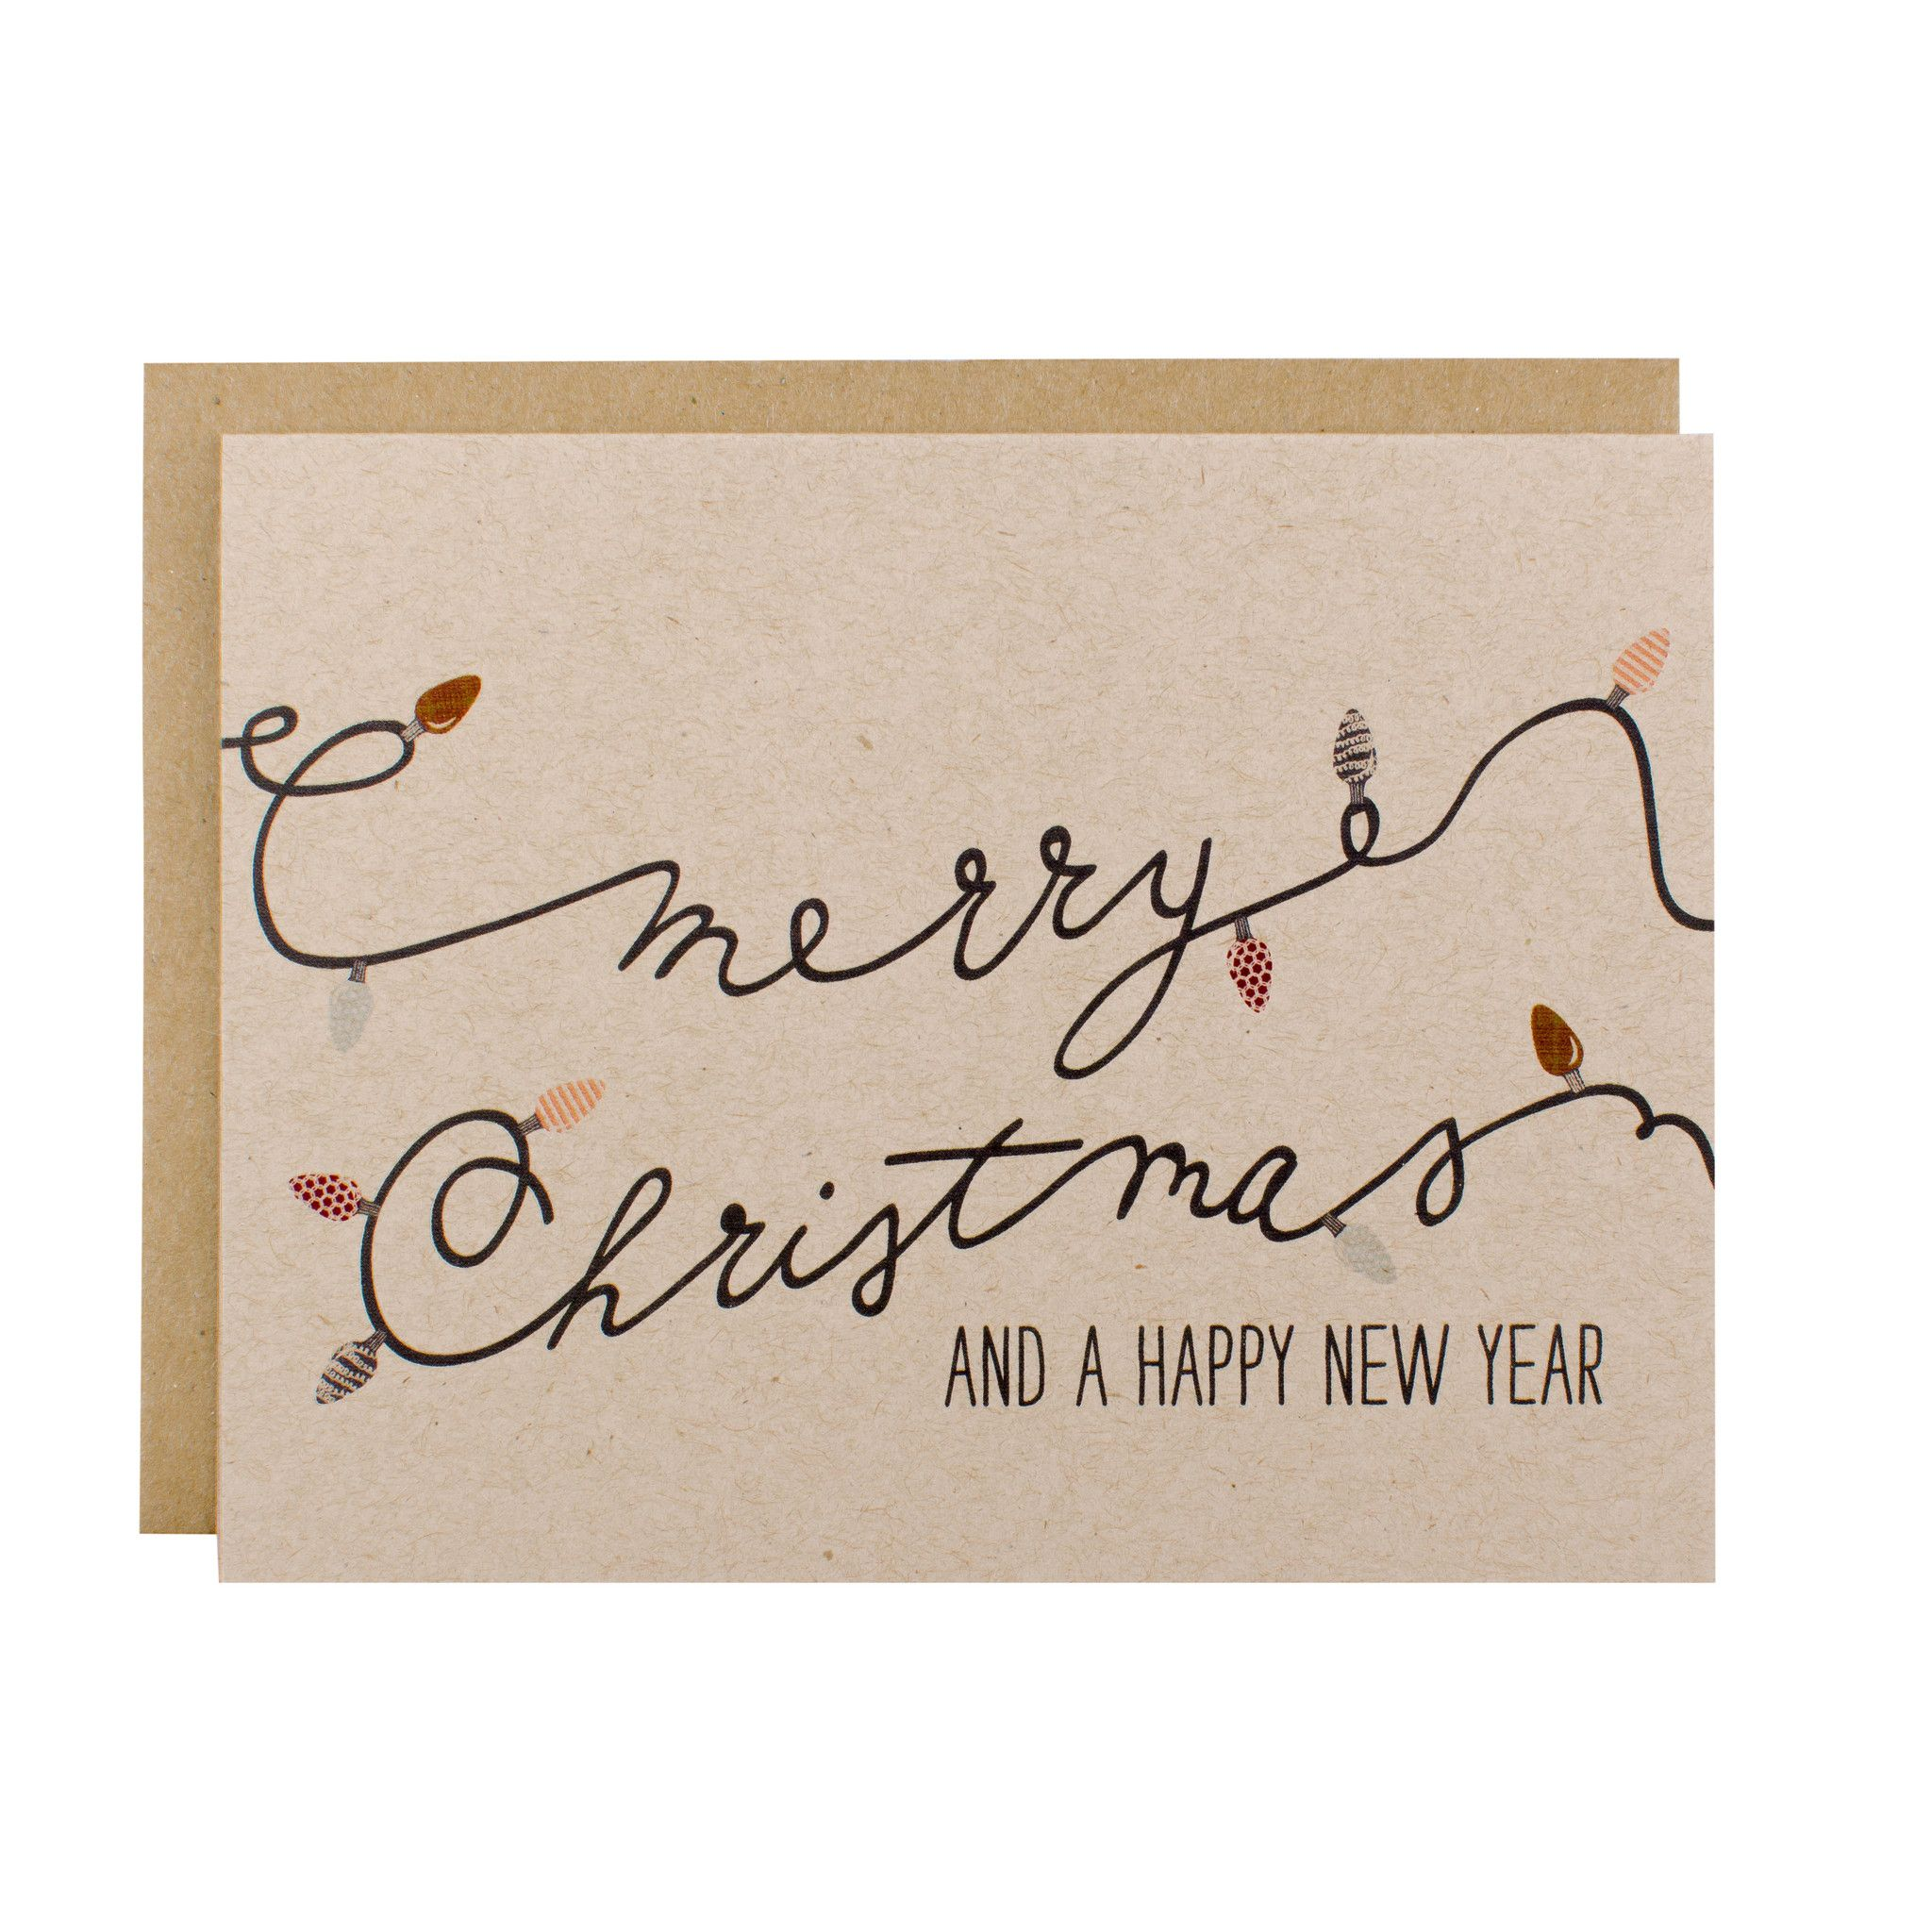 christmas cards christmas card set merry christmas a happy new year card pack